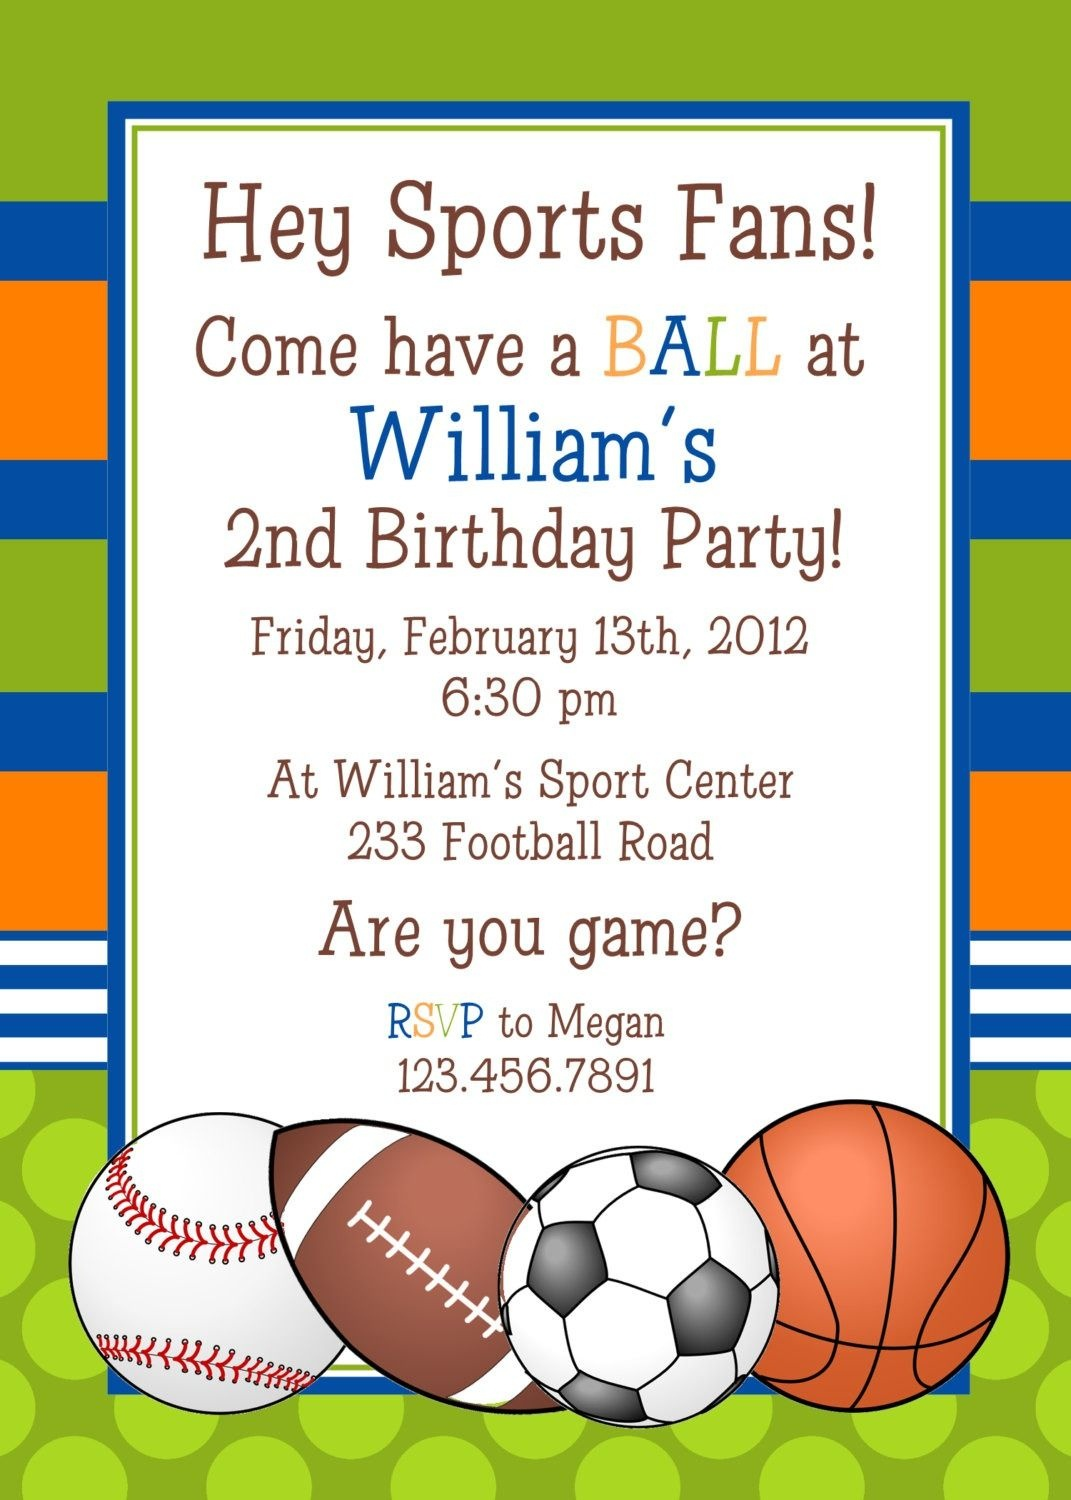 Sports Invitations Templates Free #party | Party Invitation, Cakes - Free Printable Sports Birthday Invitation Templates